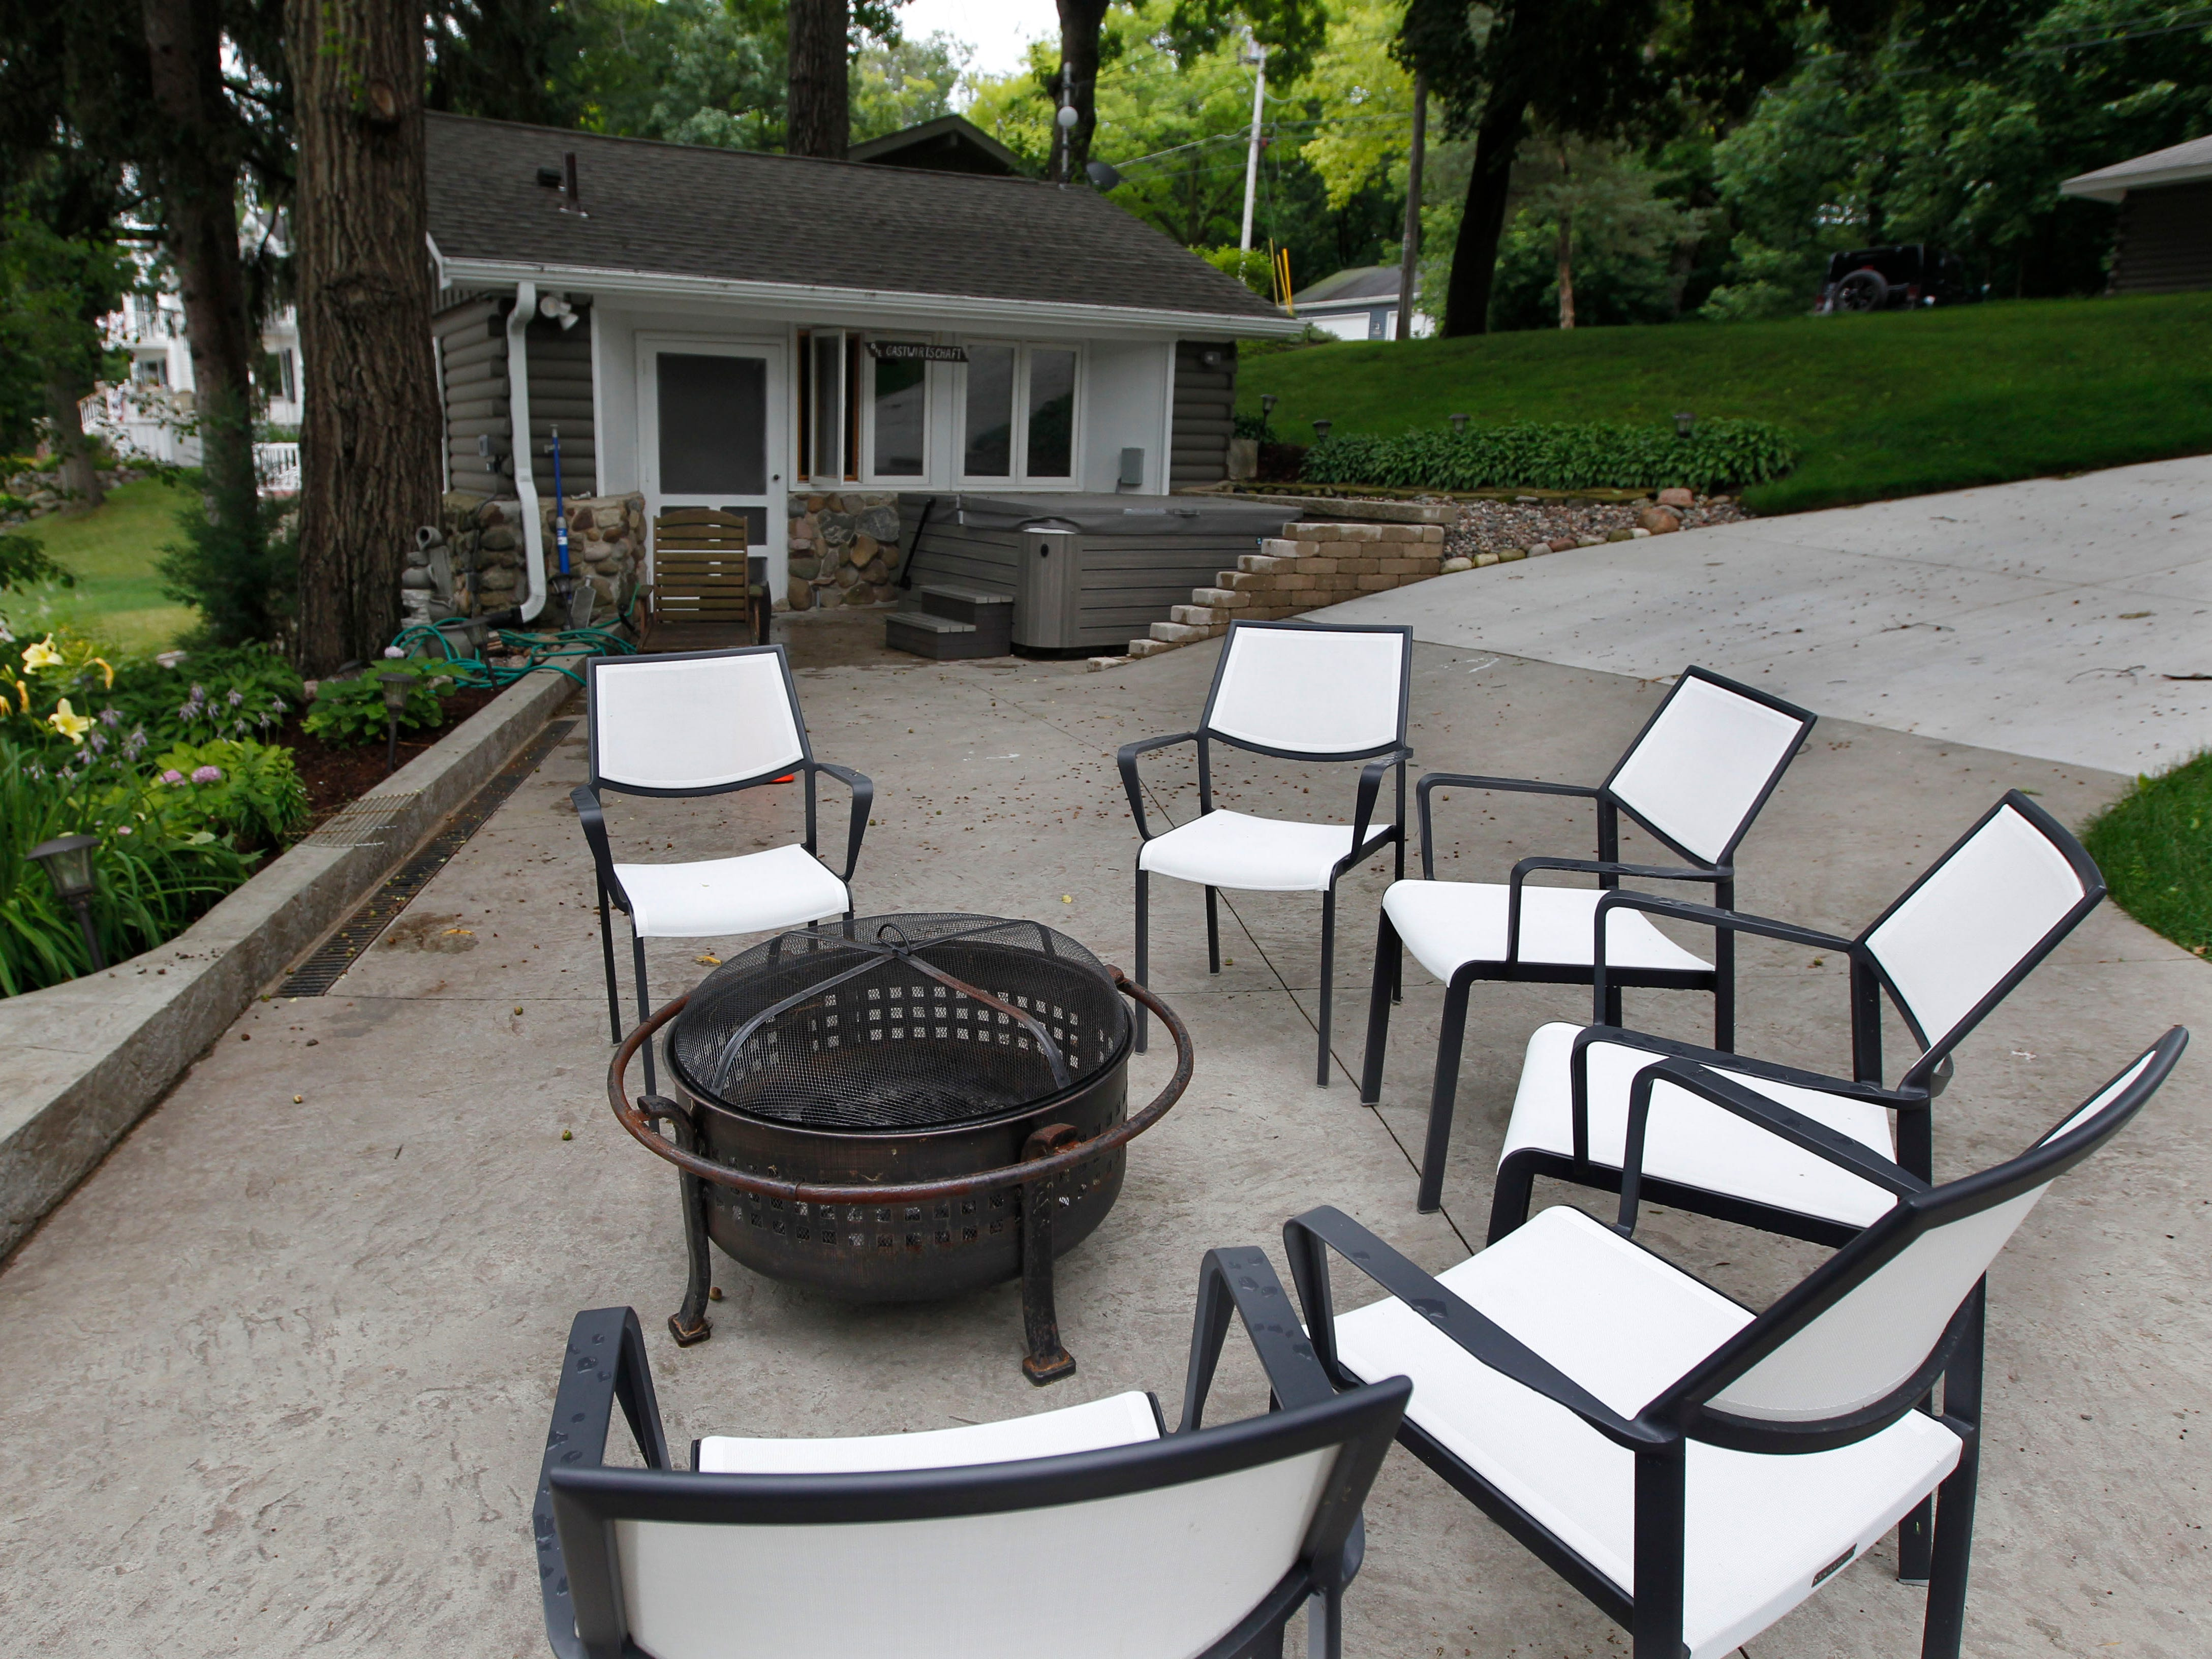 A fire pit offers warmth on chilly nights.